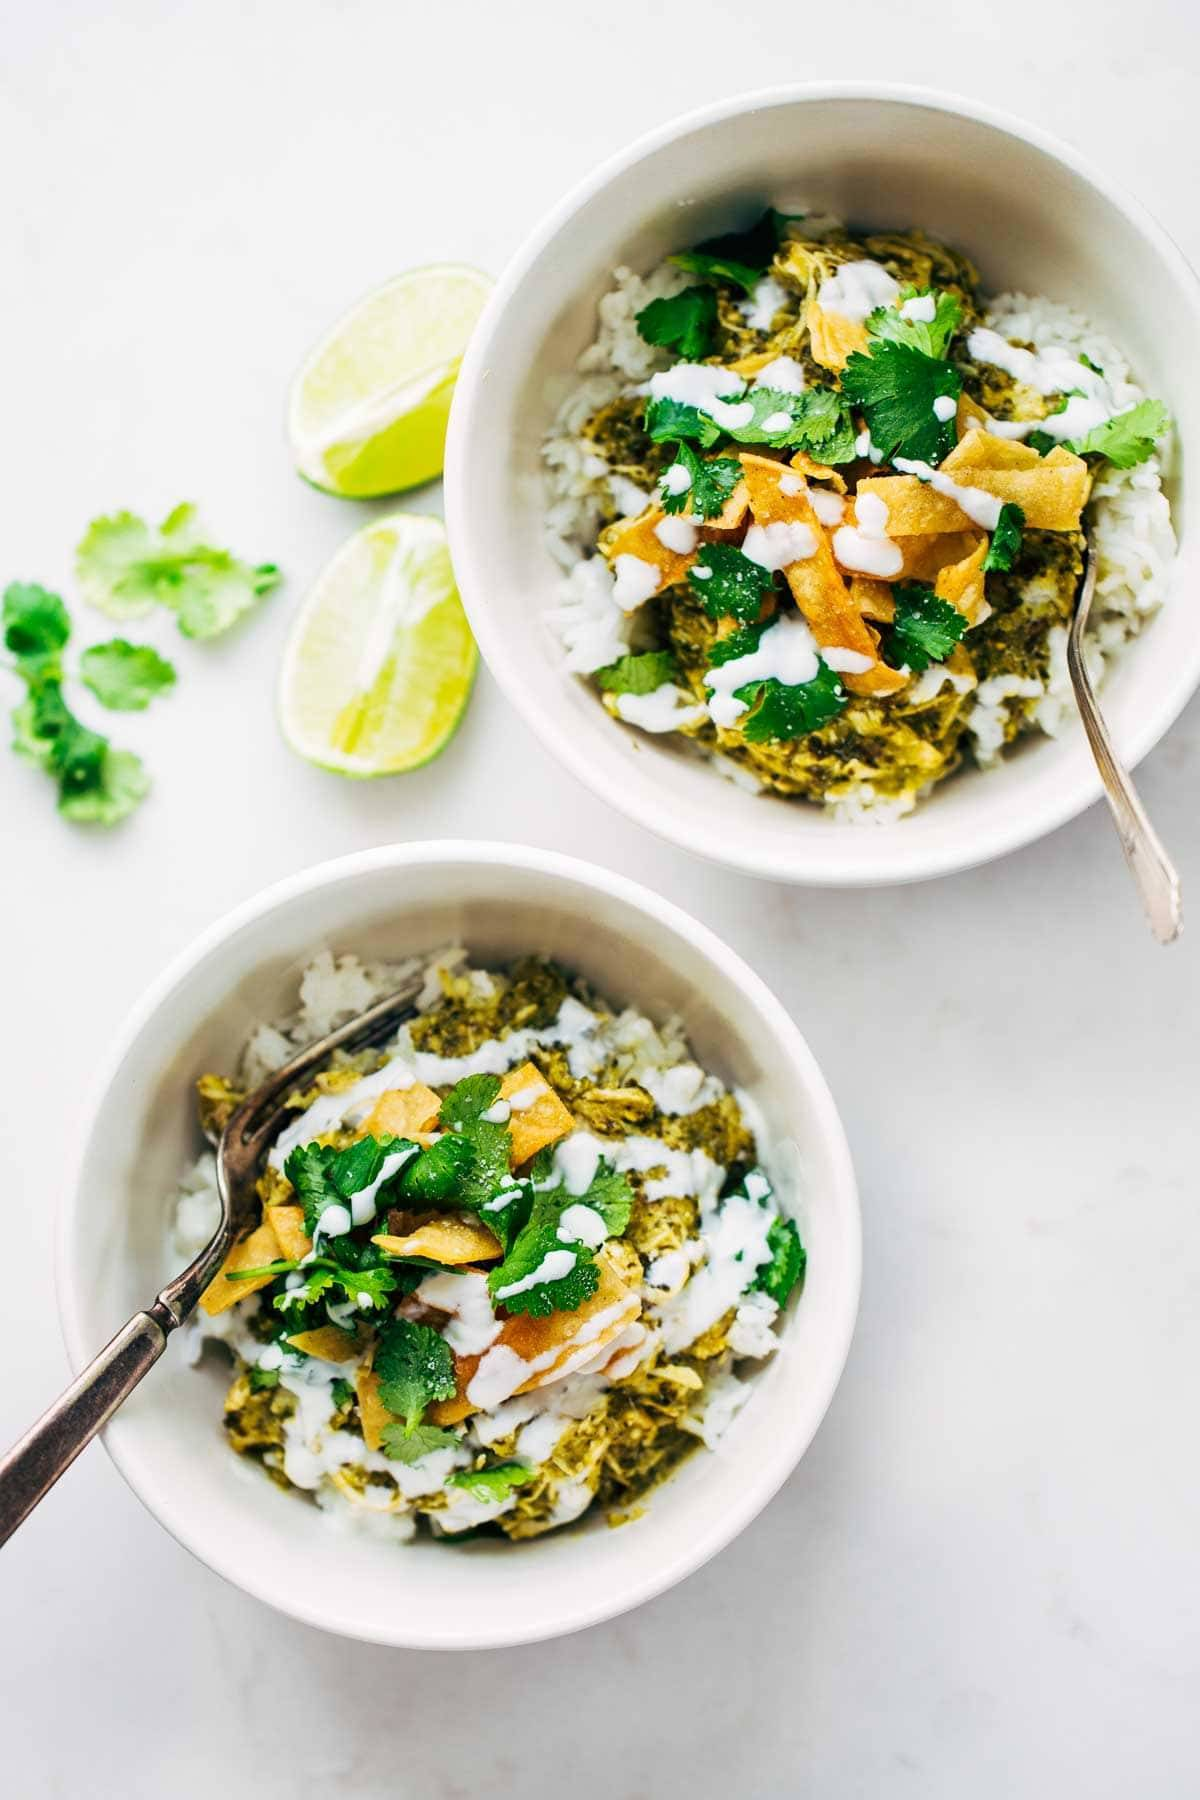 Roasted Tomatillo Chicken and Rice Bowls with limes.